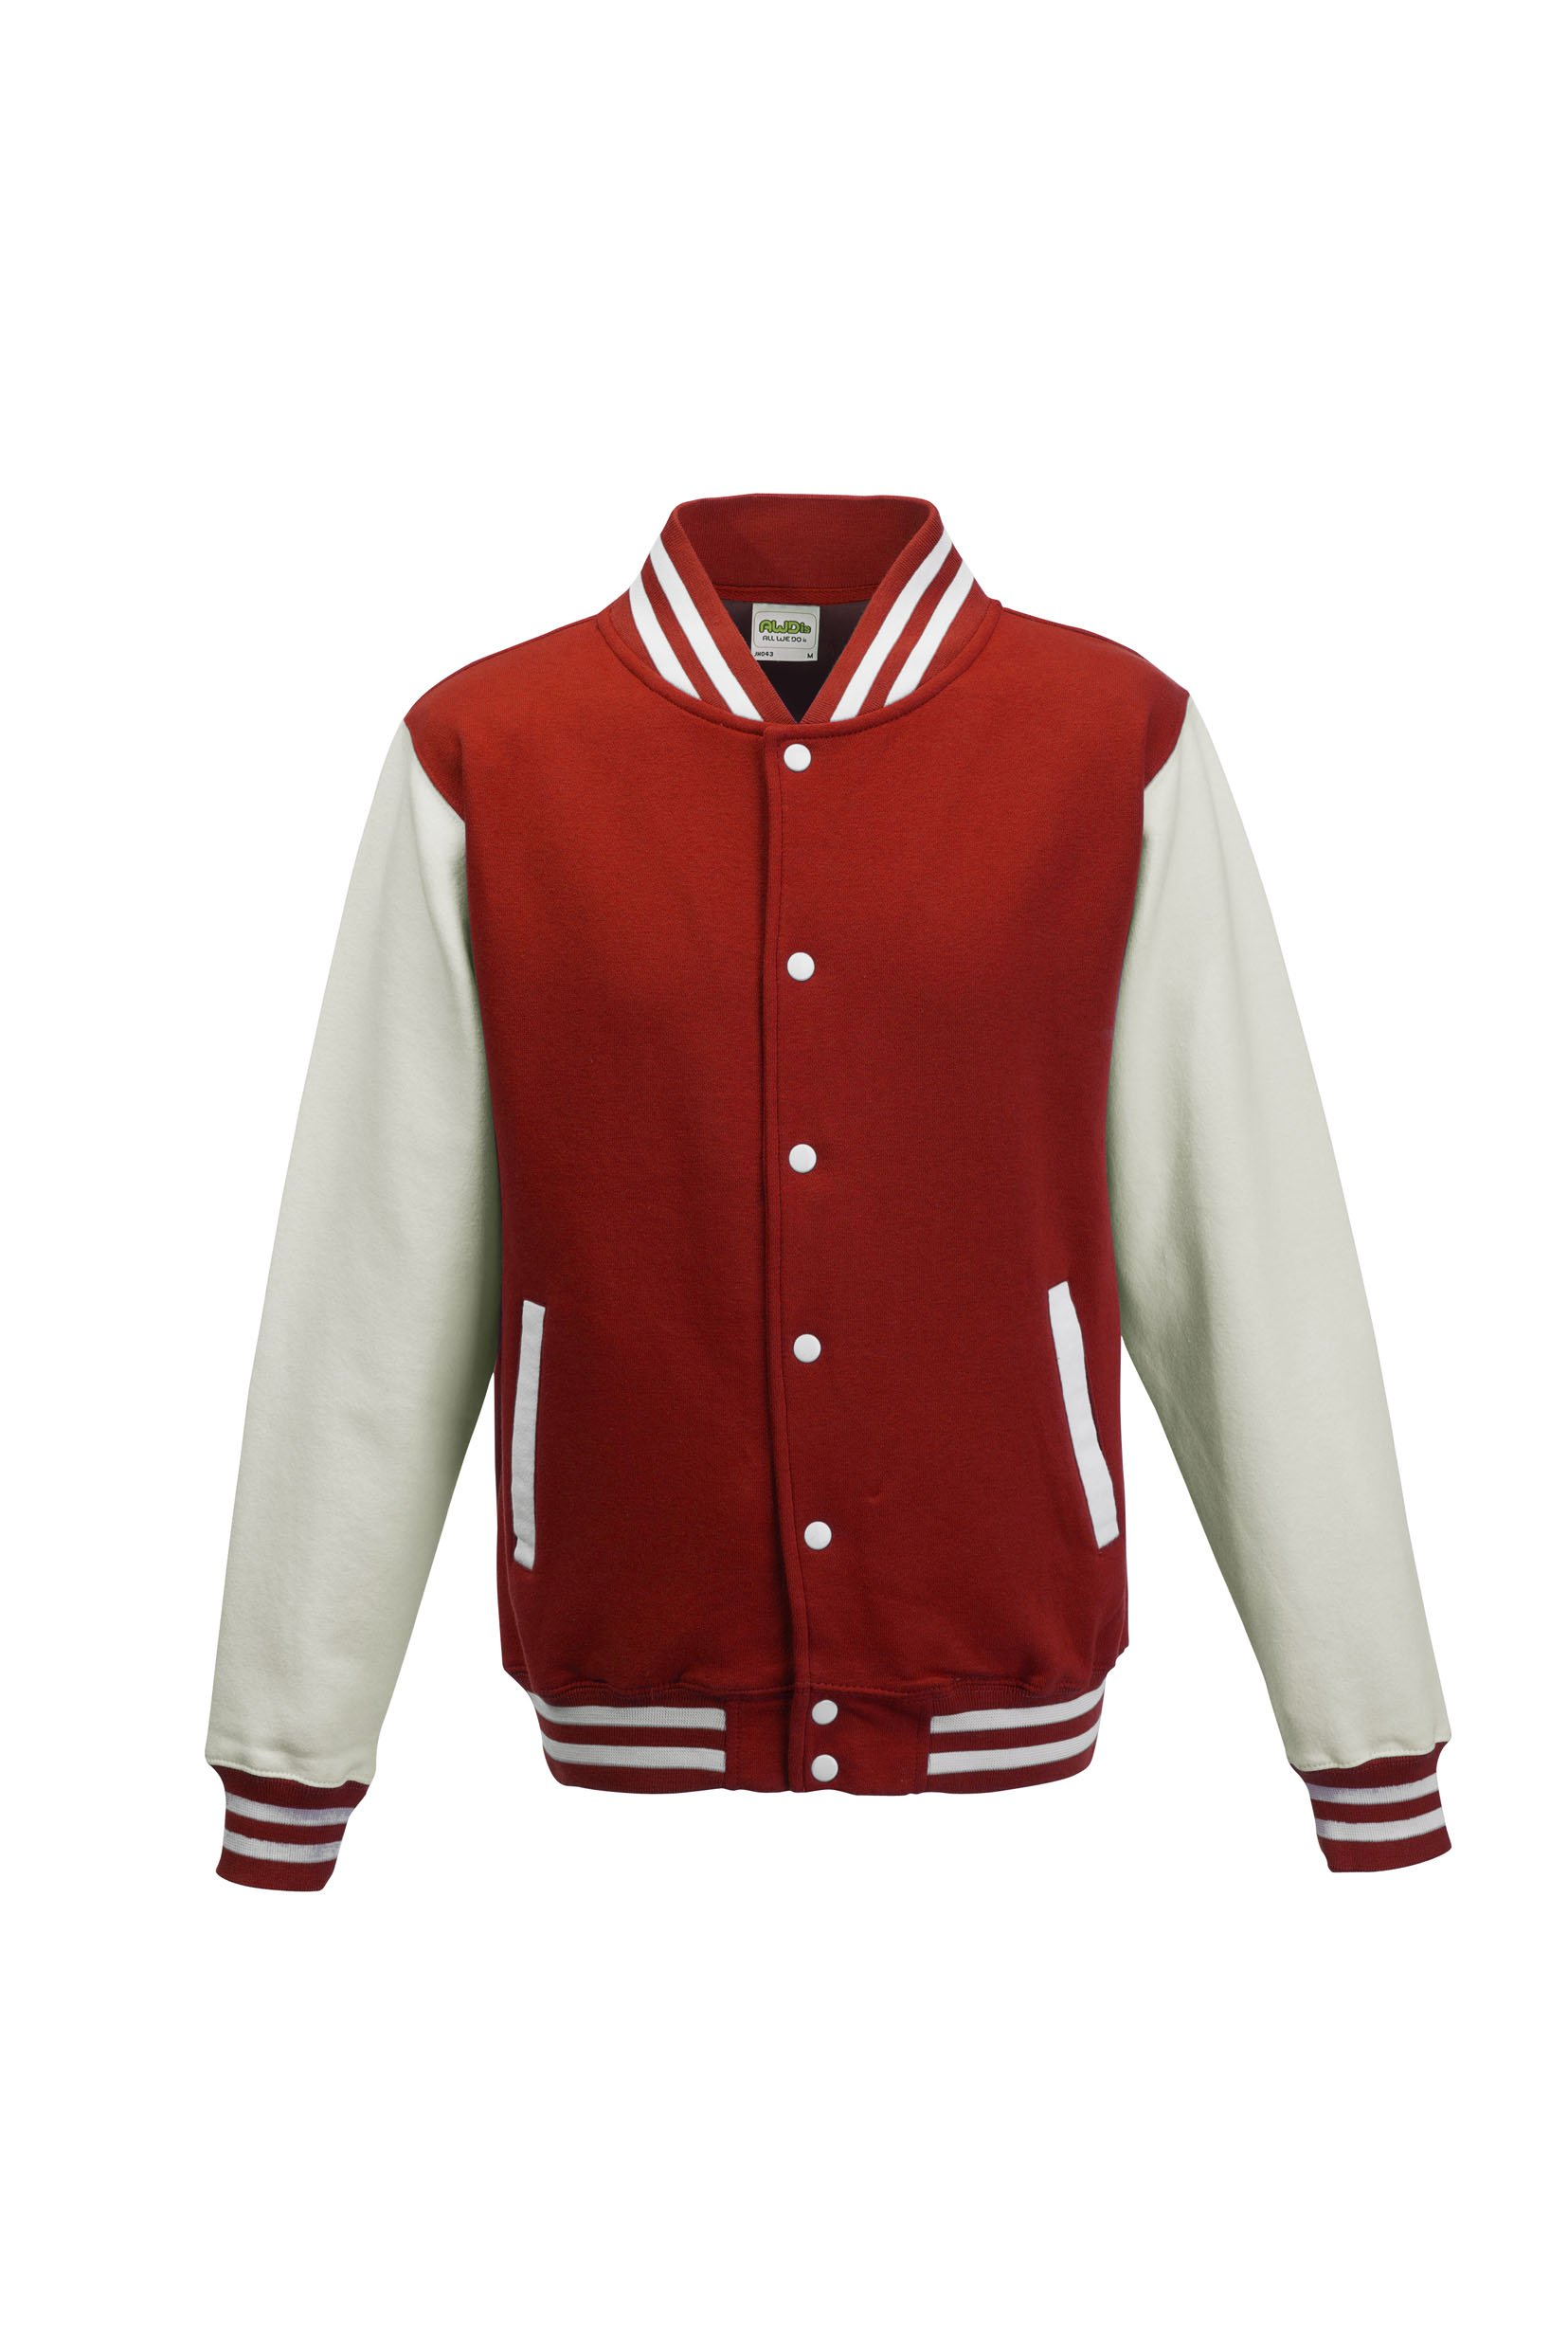 Awdis Unisex Varsity Jacket (M) (Fire Red/White) by Awdis